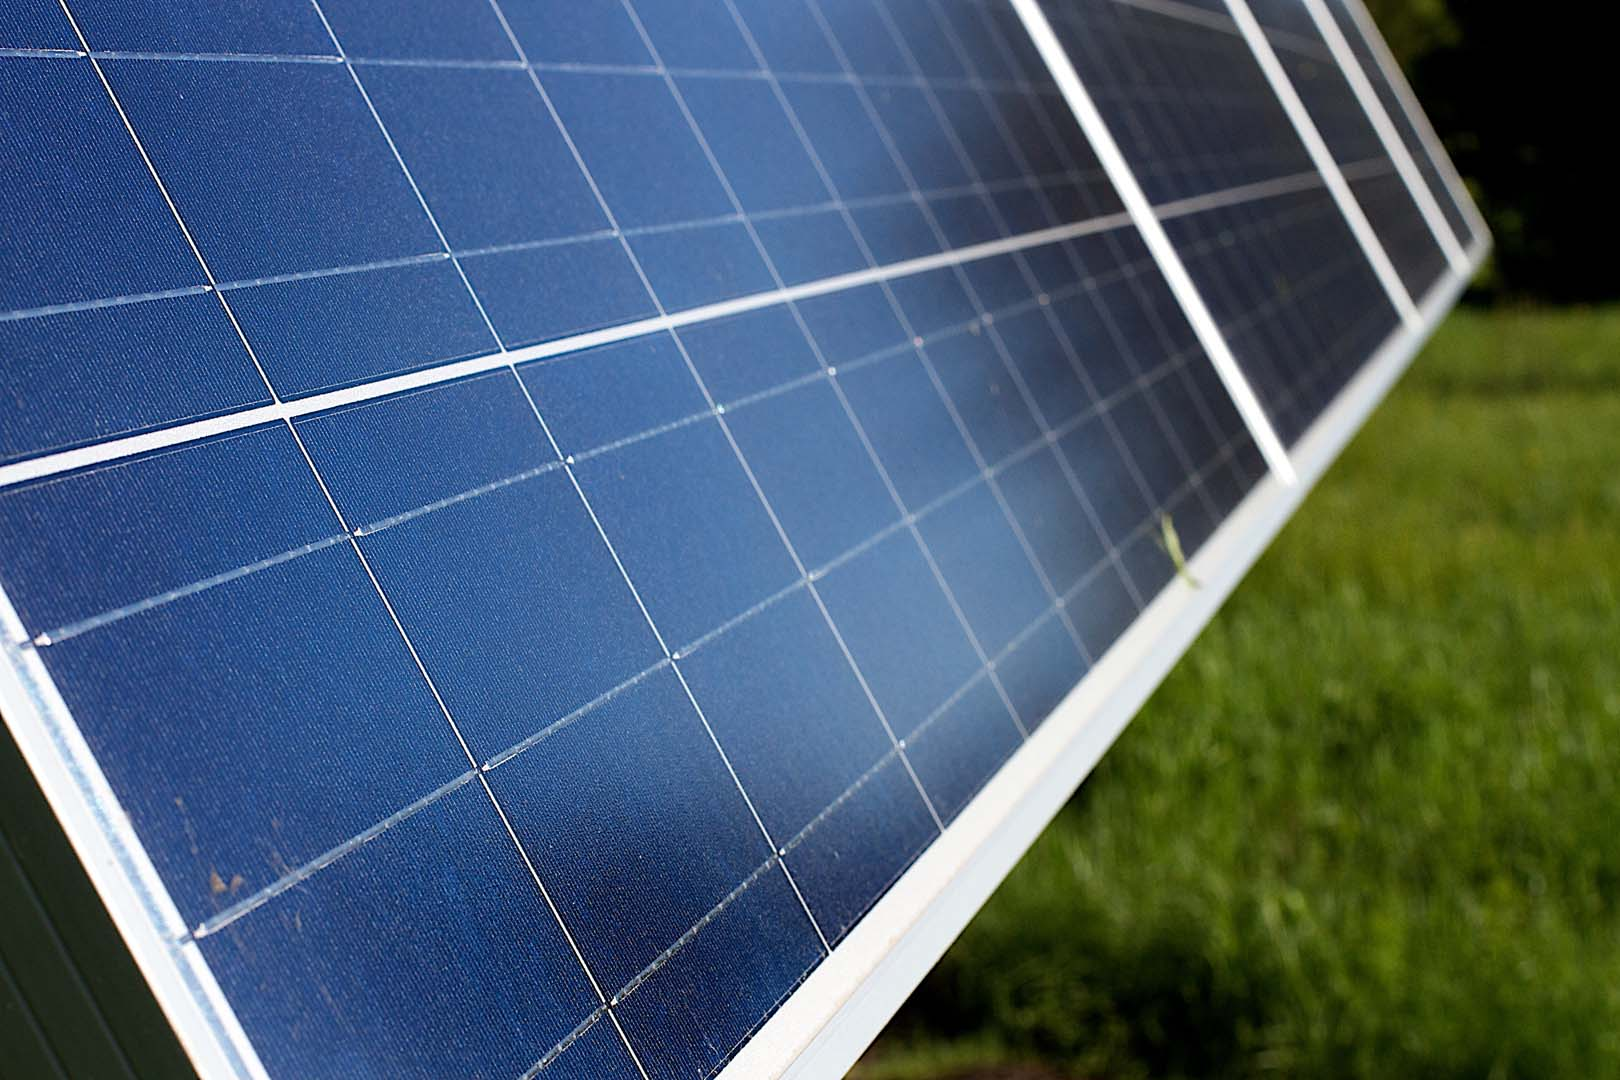 SDG&E has called for a rehearing on California's extension on net metering. Image: Alan Levine / Flickr